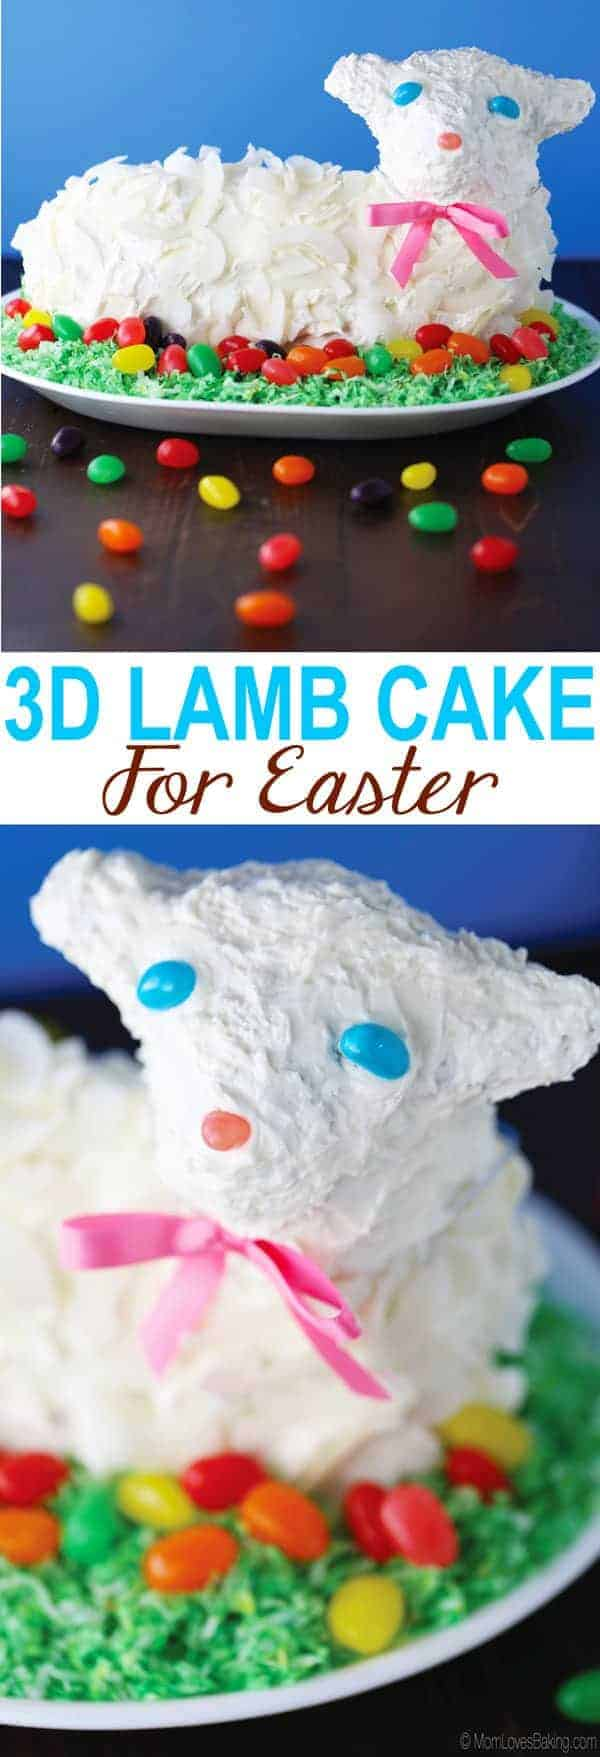 3D Lamb Cake for Easter